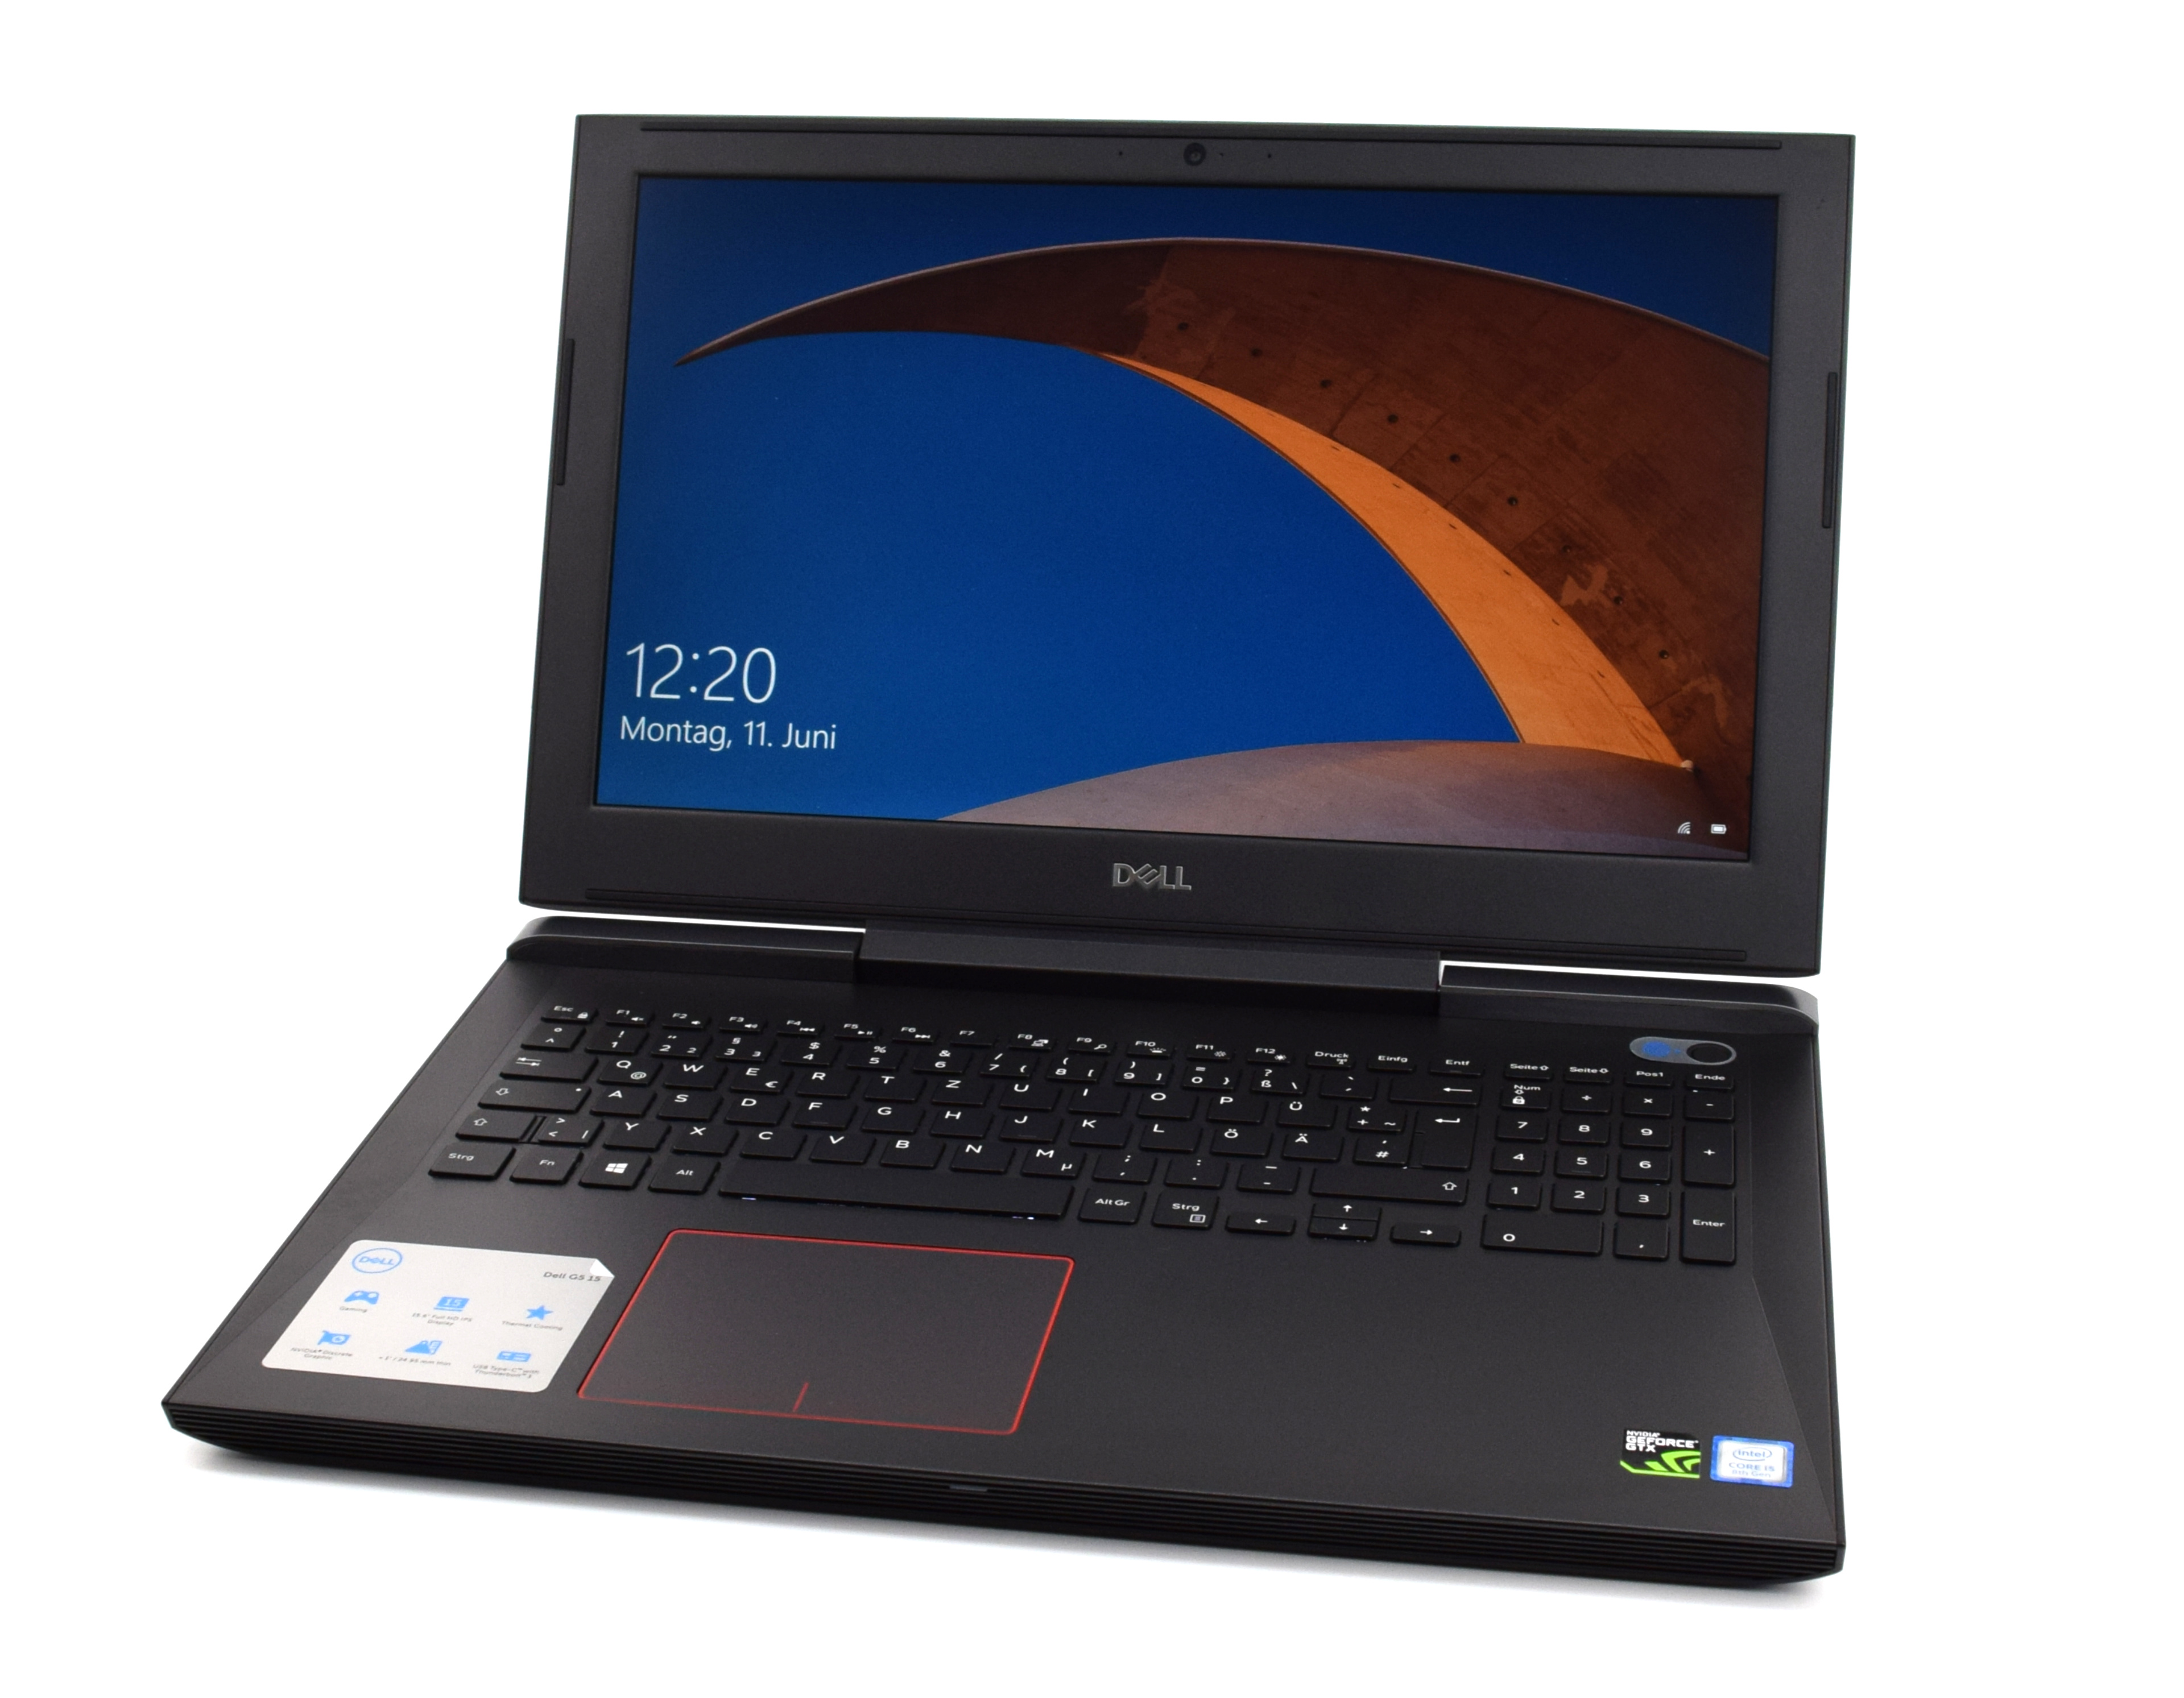 Dell G5 15 5587 (i5-8300H, GTX 1060 Max-Q, SSD, IPS) Laptop Review